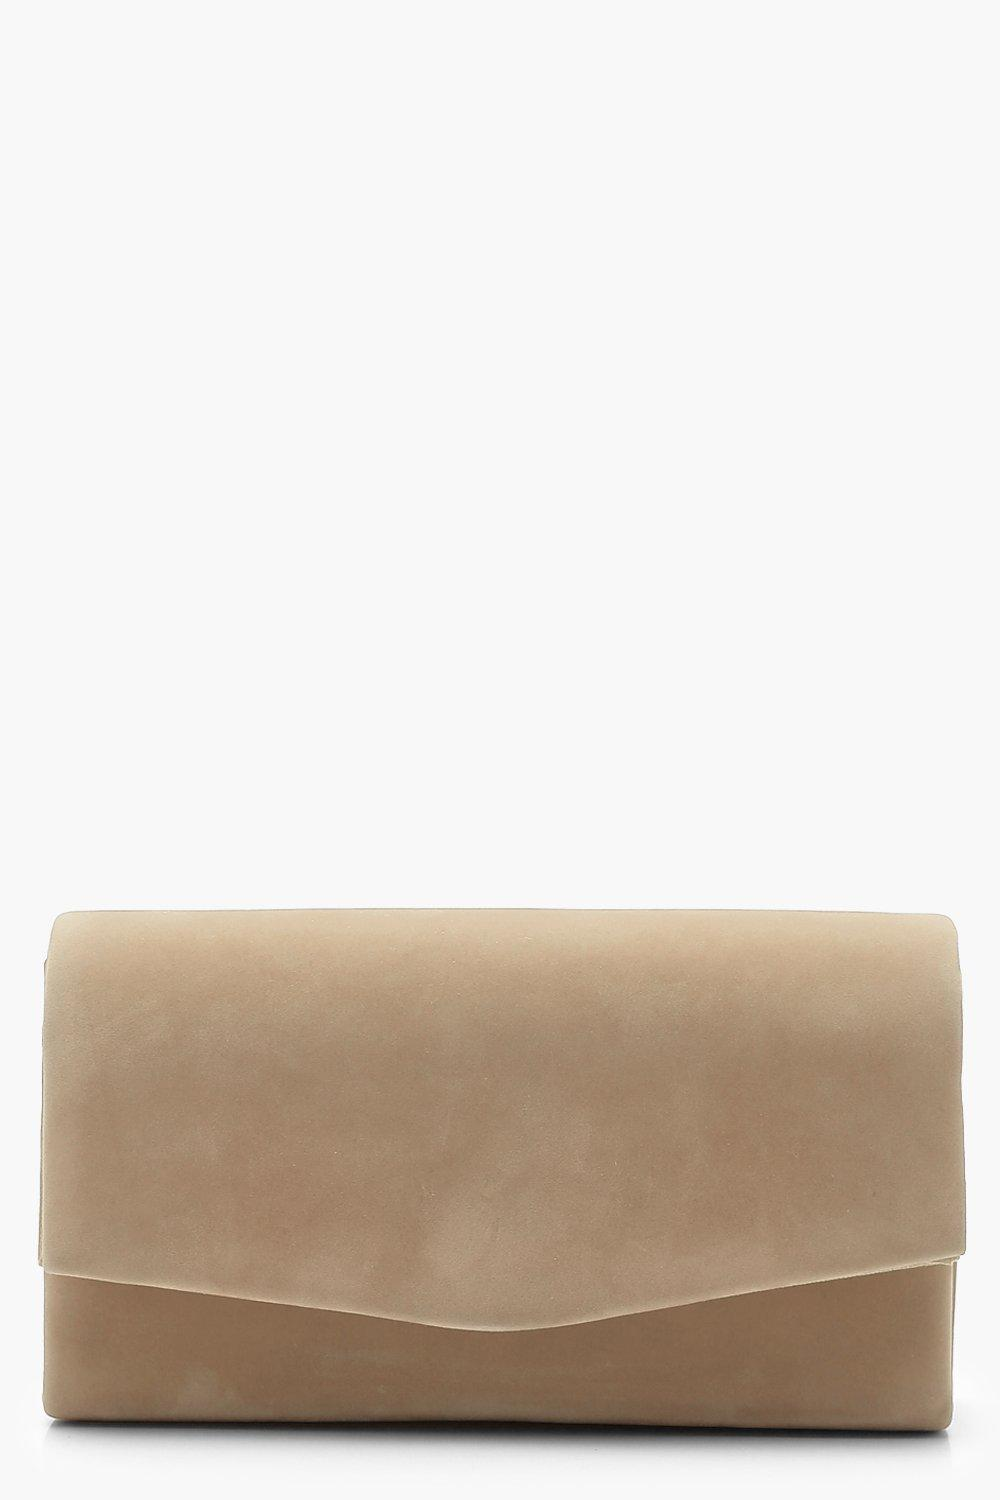 boohoo Womens Structured Suedette Clutch Bag & Chain - Beige - One Size, Beige